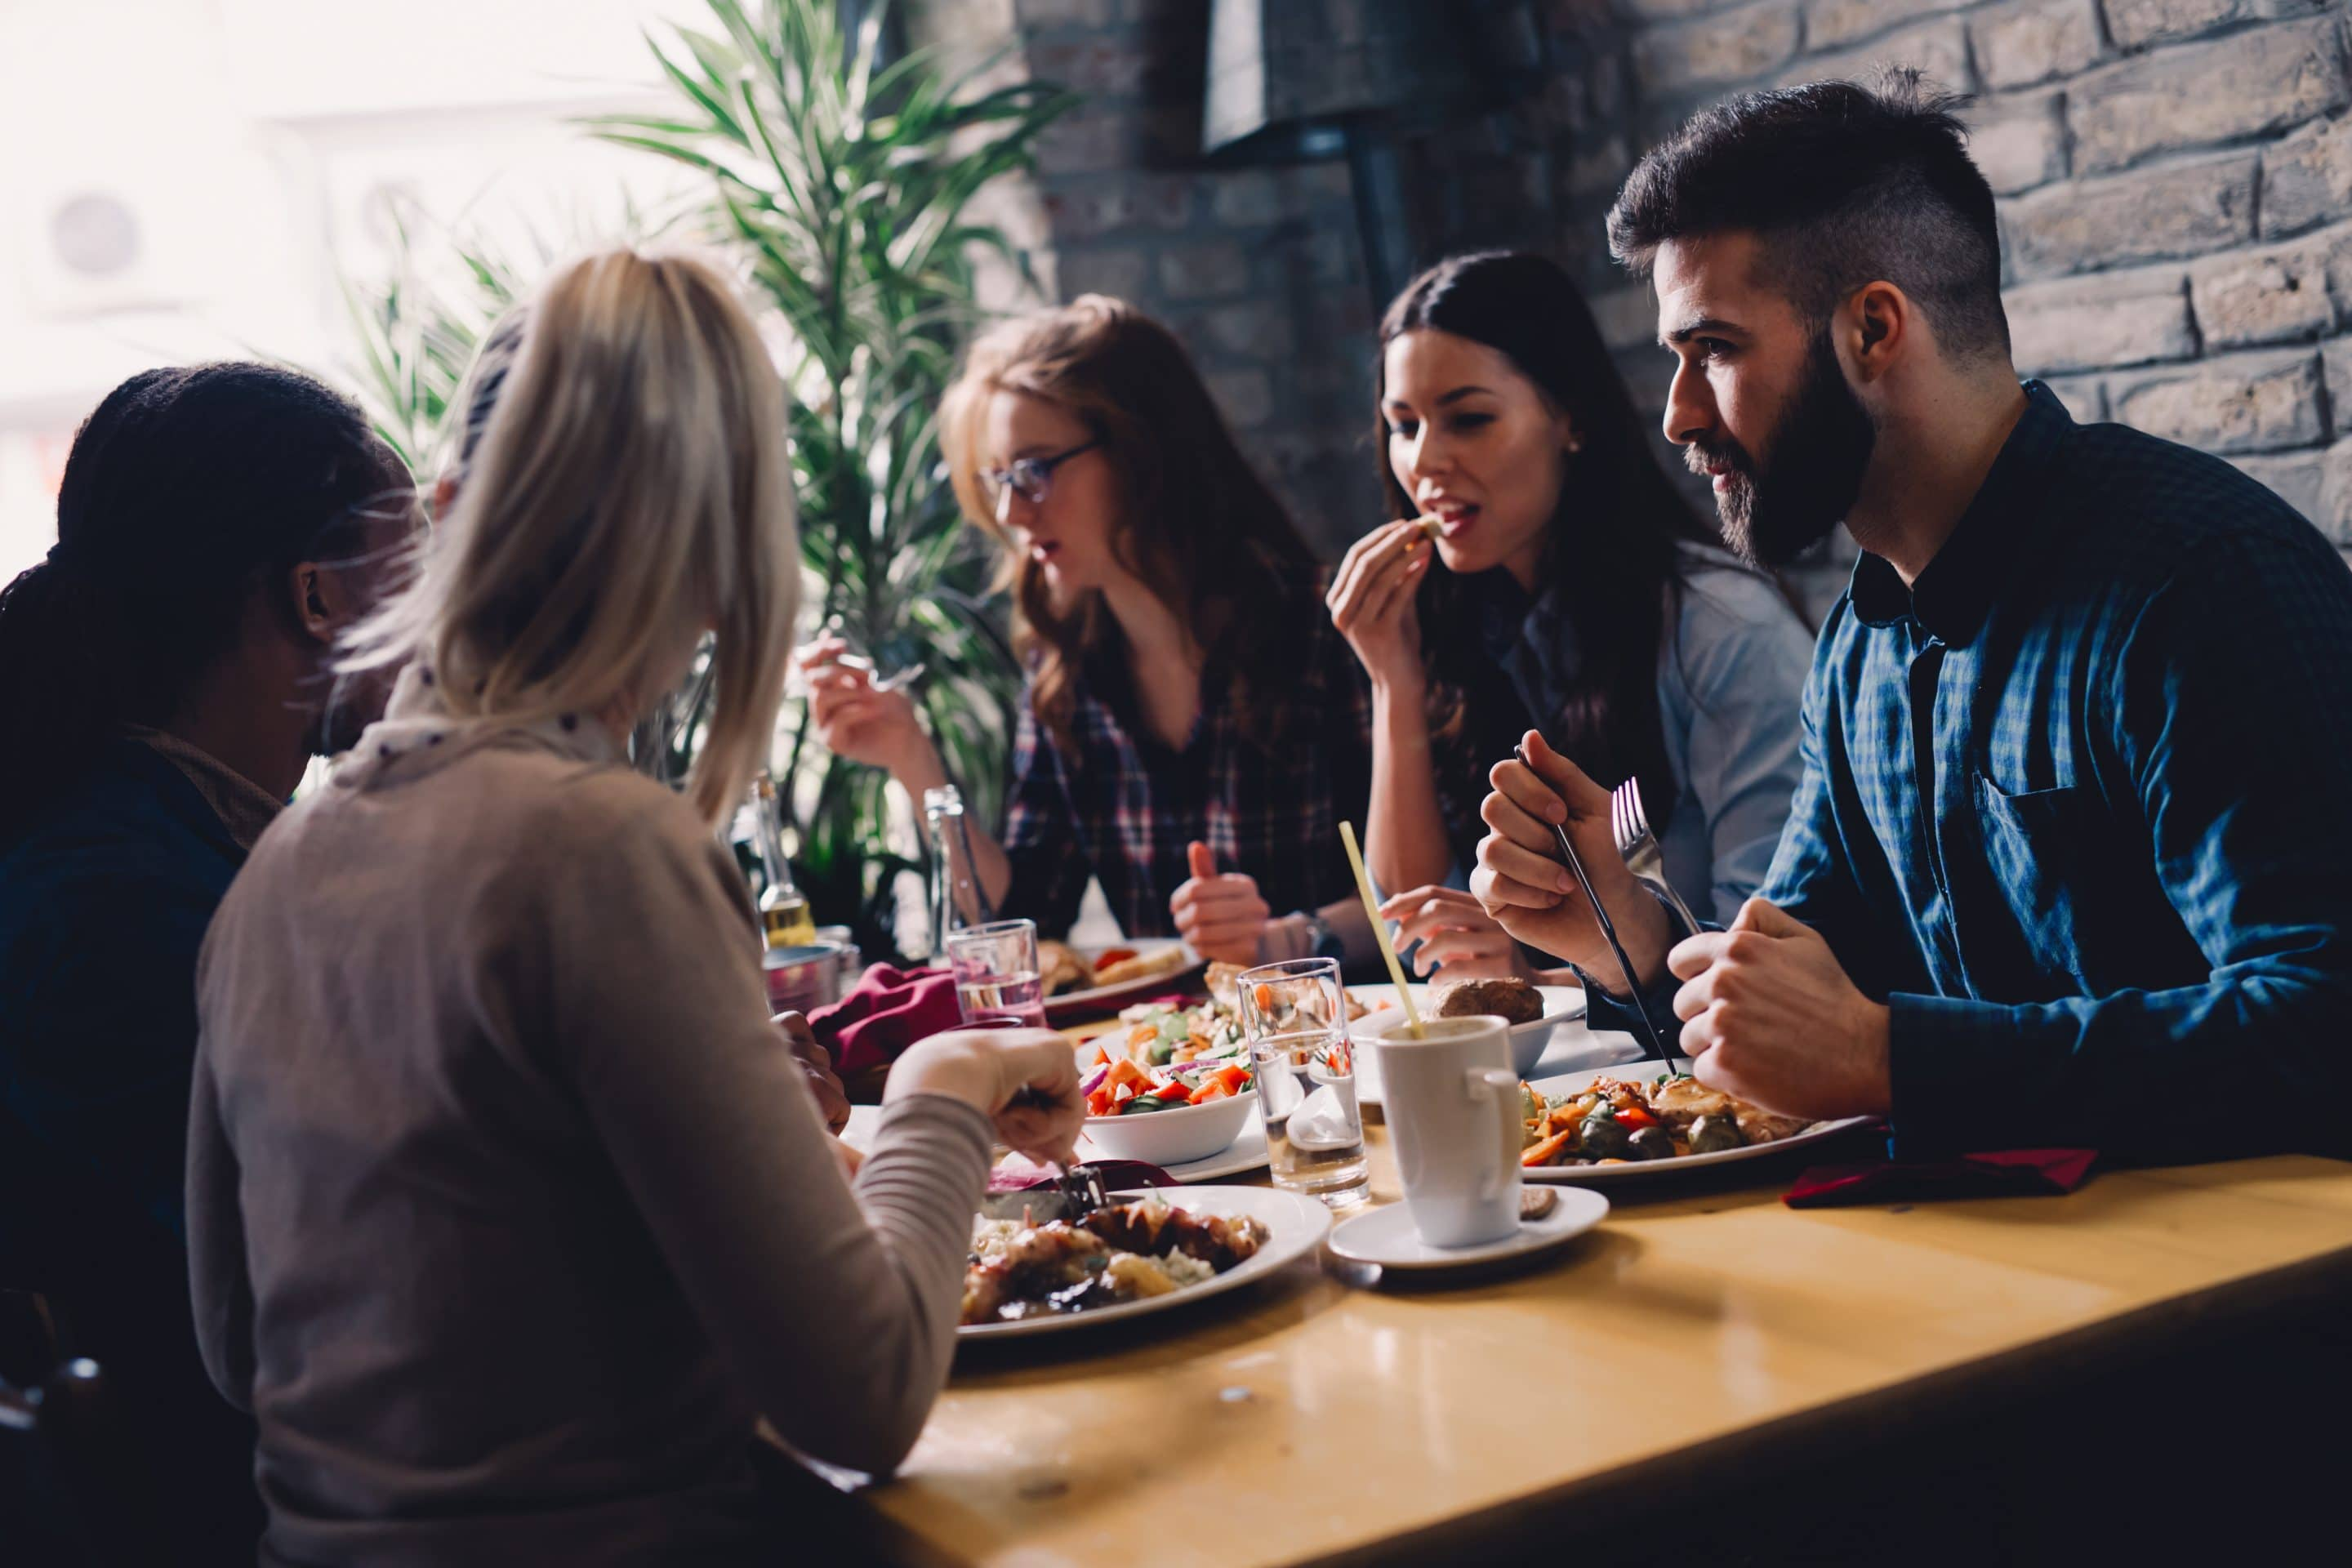 Let's be honest, Thanksgiving with family can sometimes be hard. And in a lot of ways, the workplace can be very similar to a Thanksgiving experience – a place filled with imperfect people who have differing opinions and beliefs all united by one common mission. The only difference is that they share a conference table […]